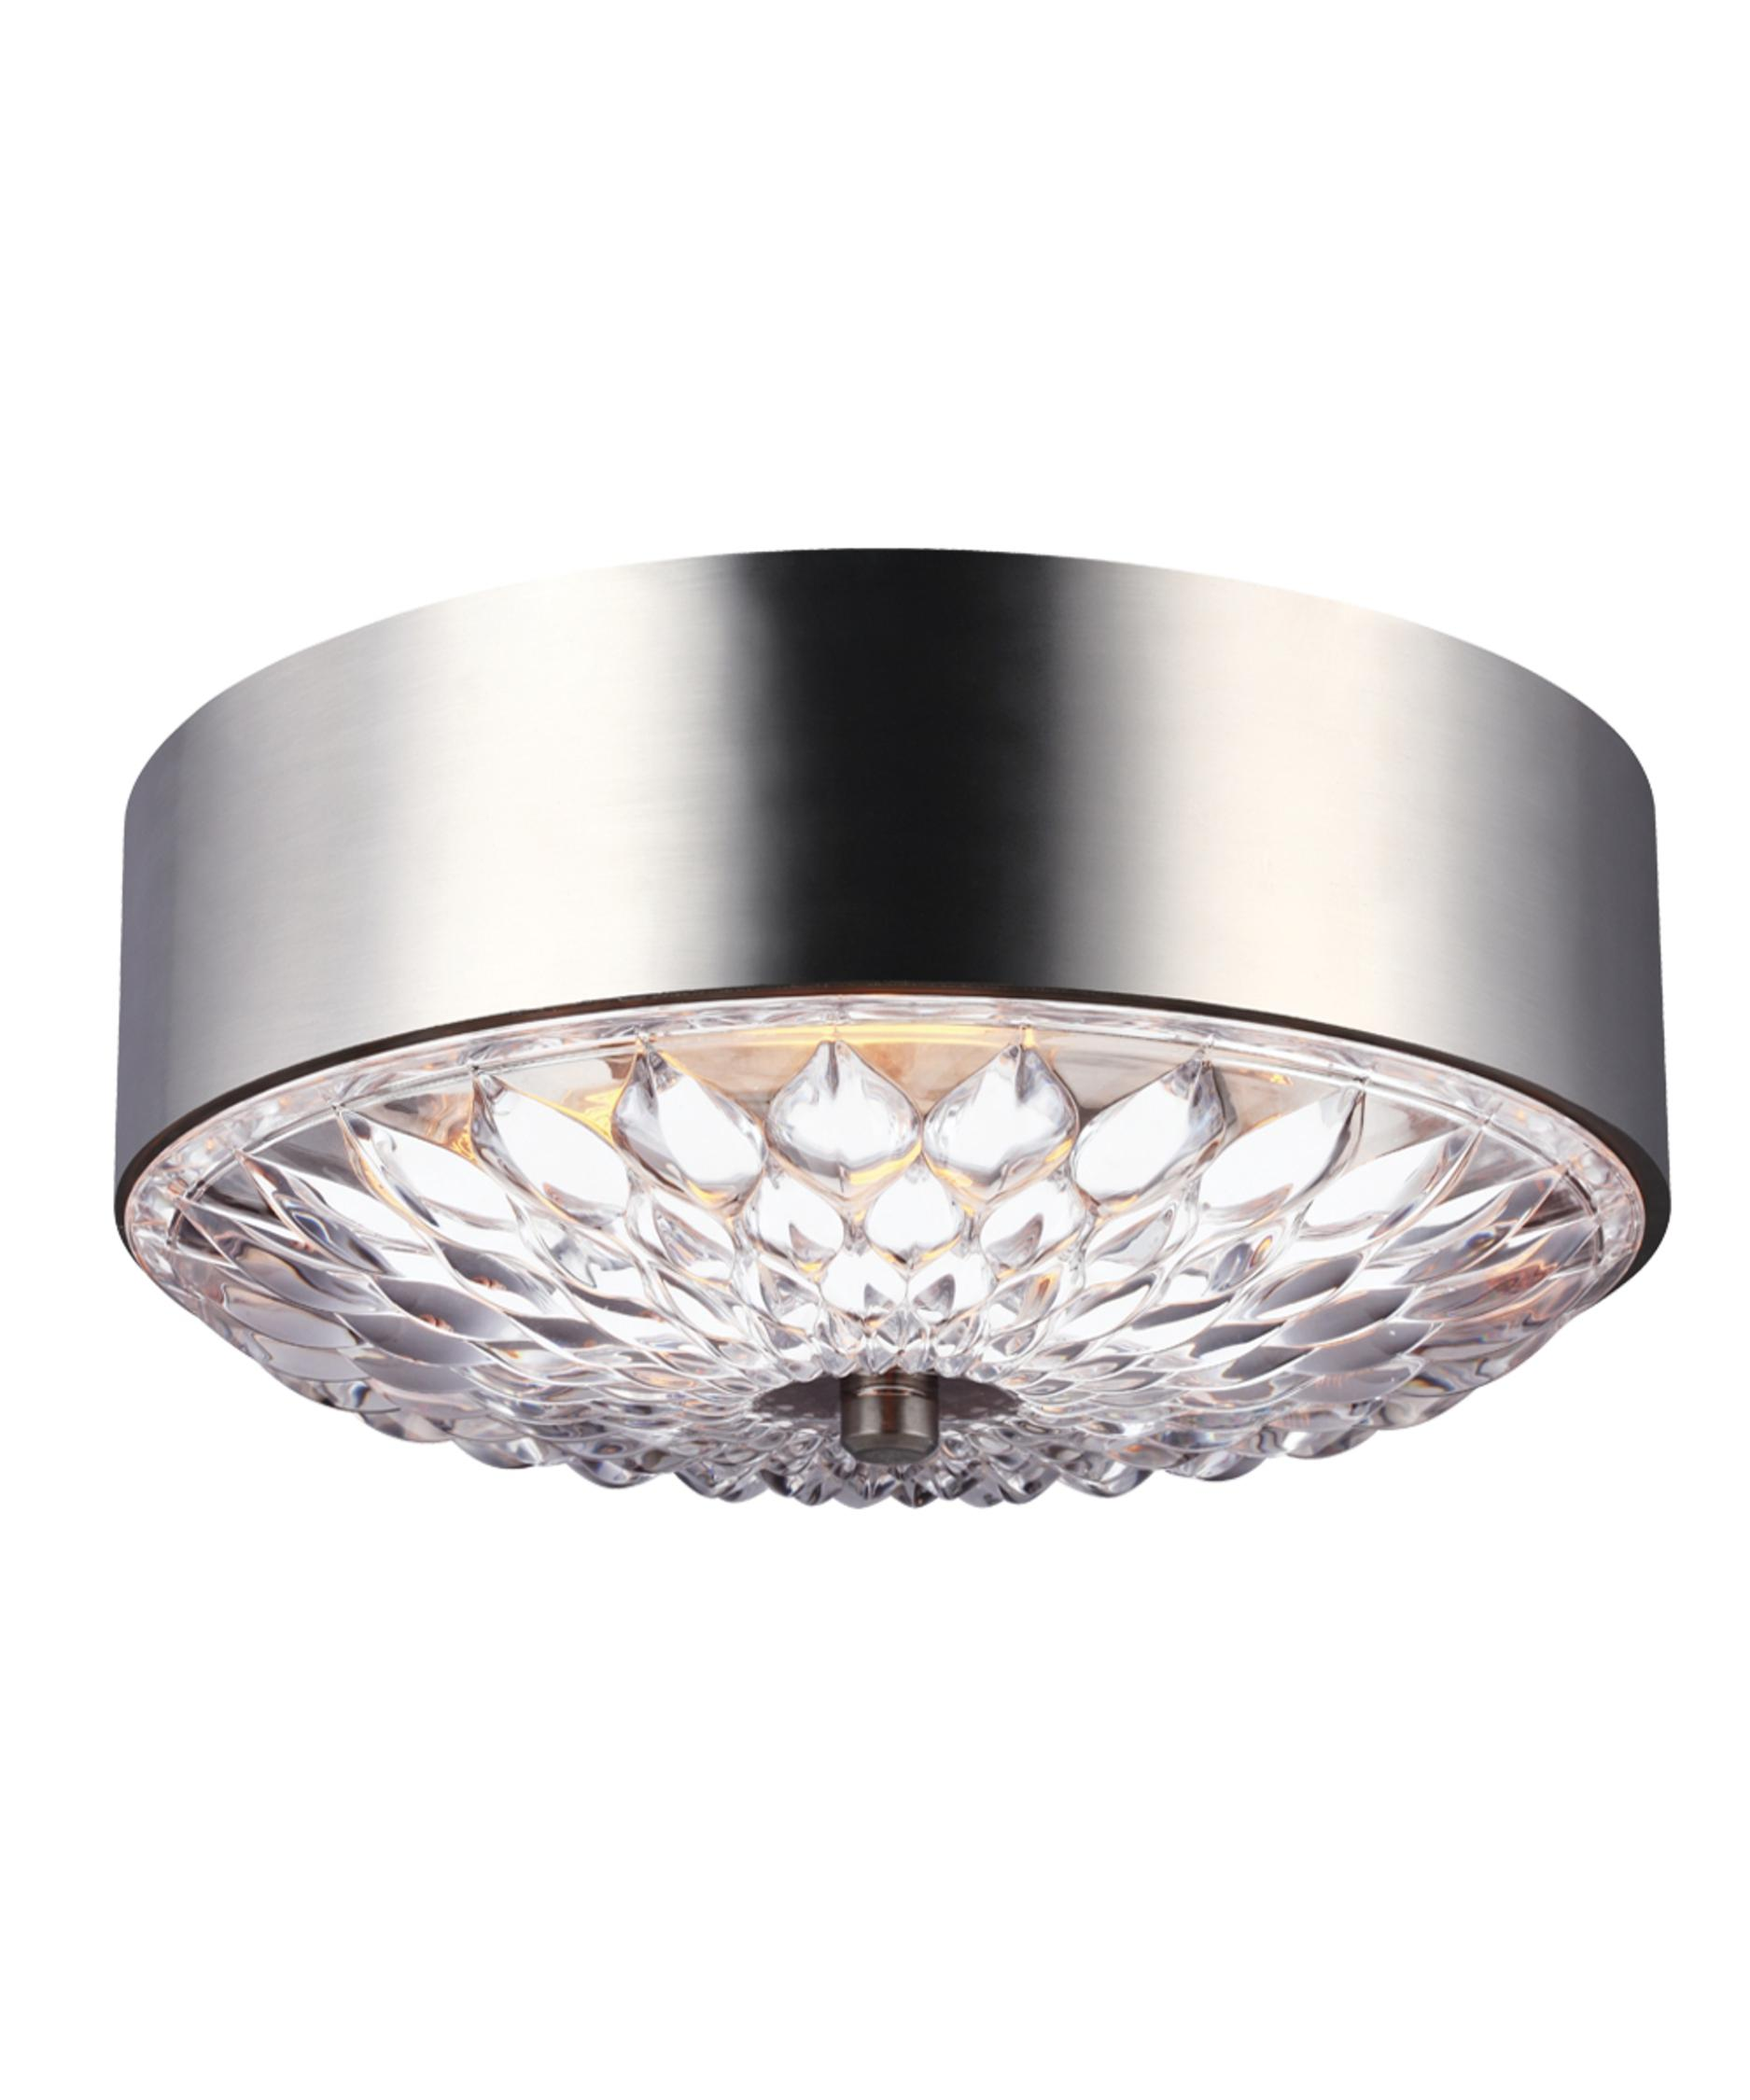 shown in aged pewter finish - Feiss Lighting